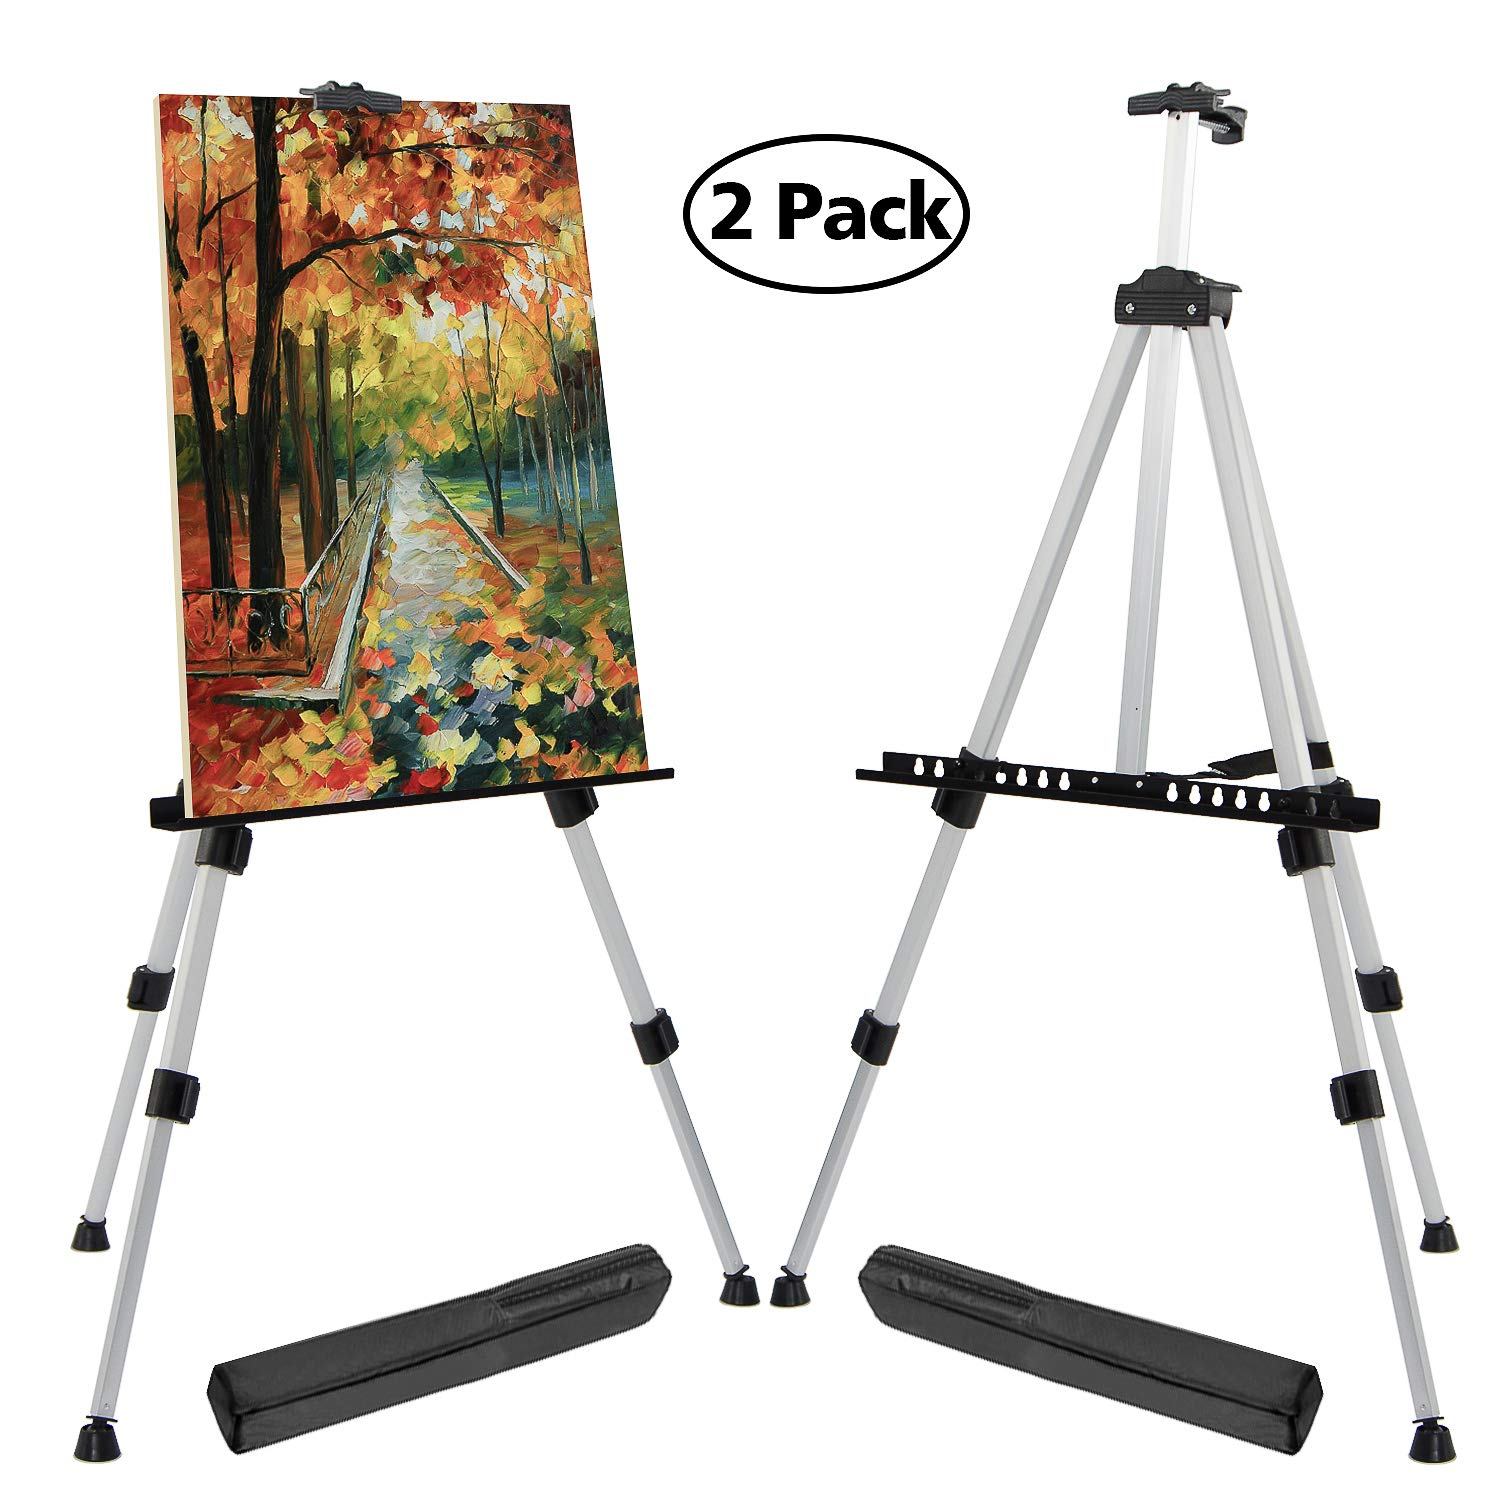 T-Sign 66'' Reinforced Artist Easel Stand, Extra Thick Aluminum Metal Tripod Display Easel 21'' to 66'' Adjustable Height with Portable Bag for Floor/Table-Top Drawing and Displaying, 2 Pack